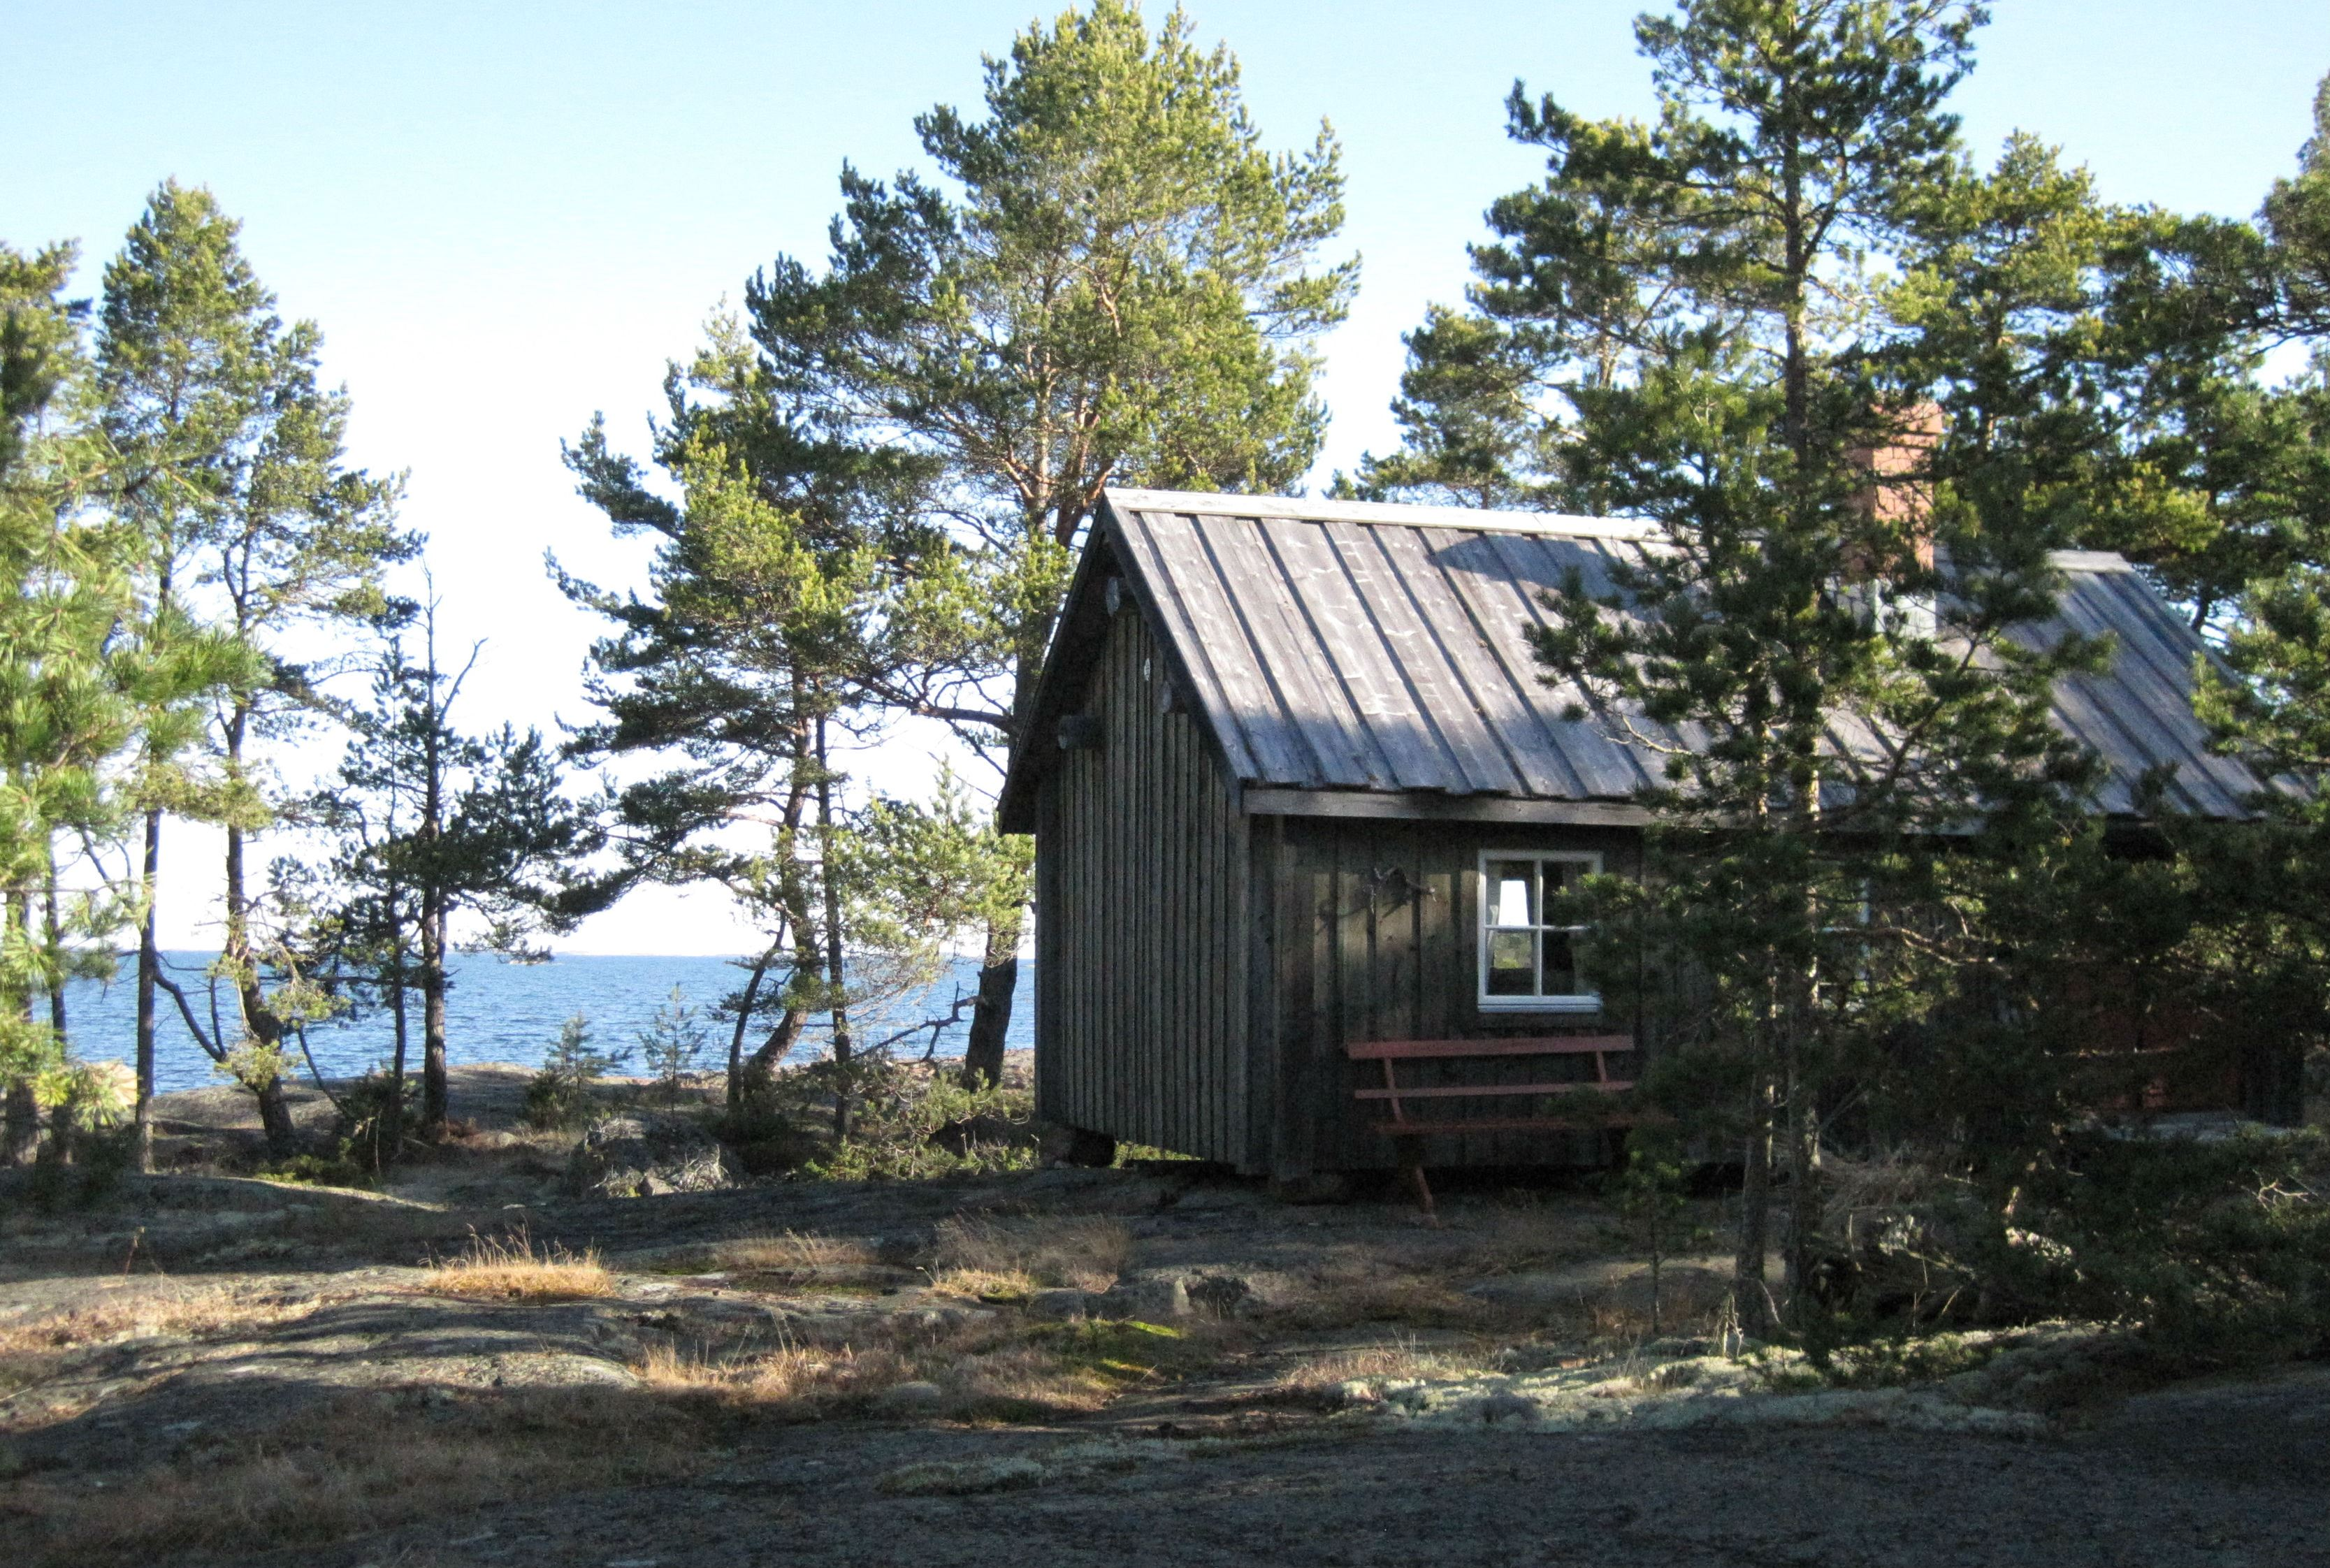 The Hermit Cottage on Sviskär Island, Silverskär